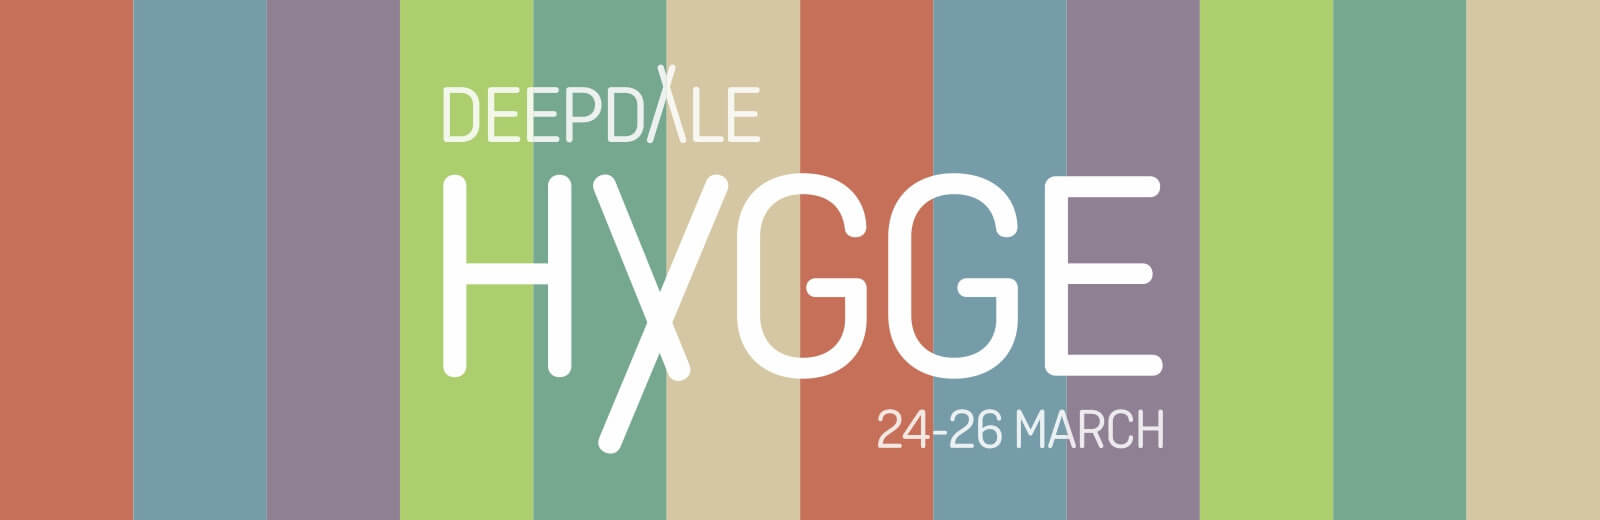 Deepdale Hygge - back to the begining